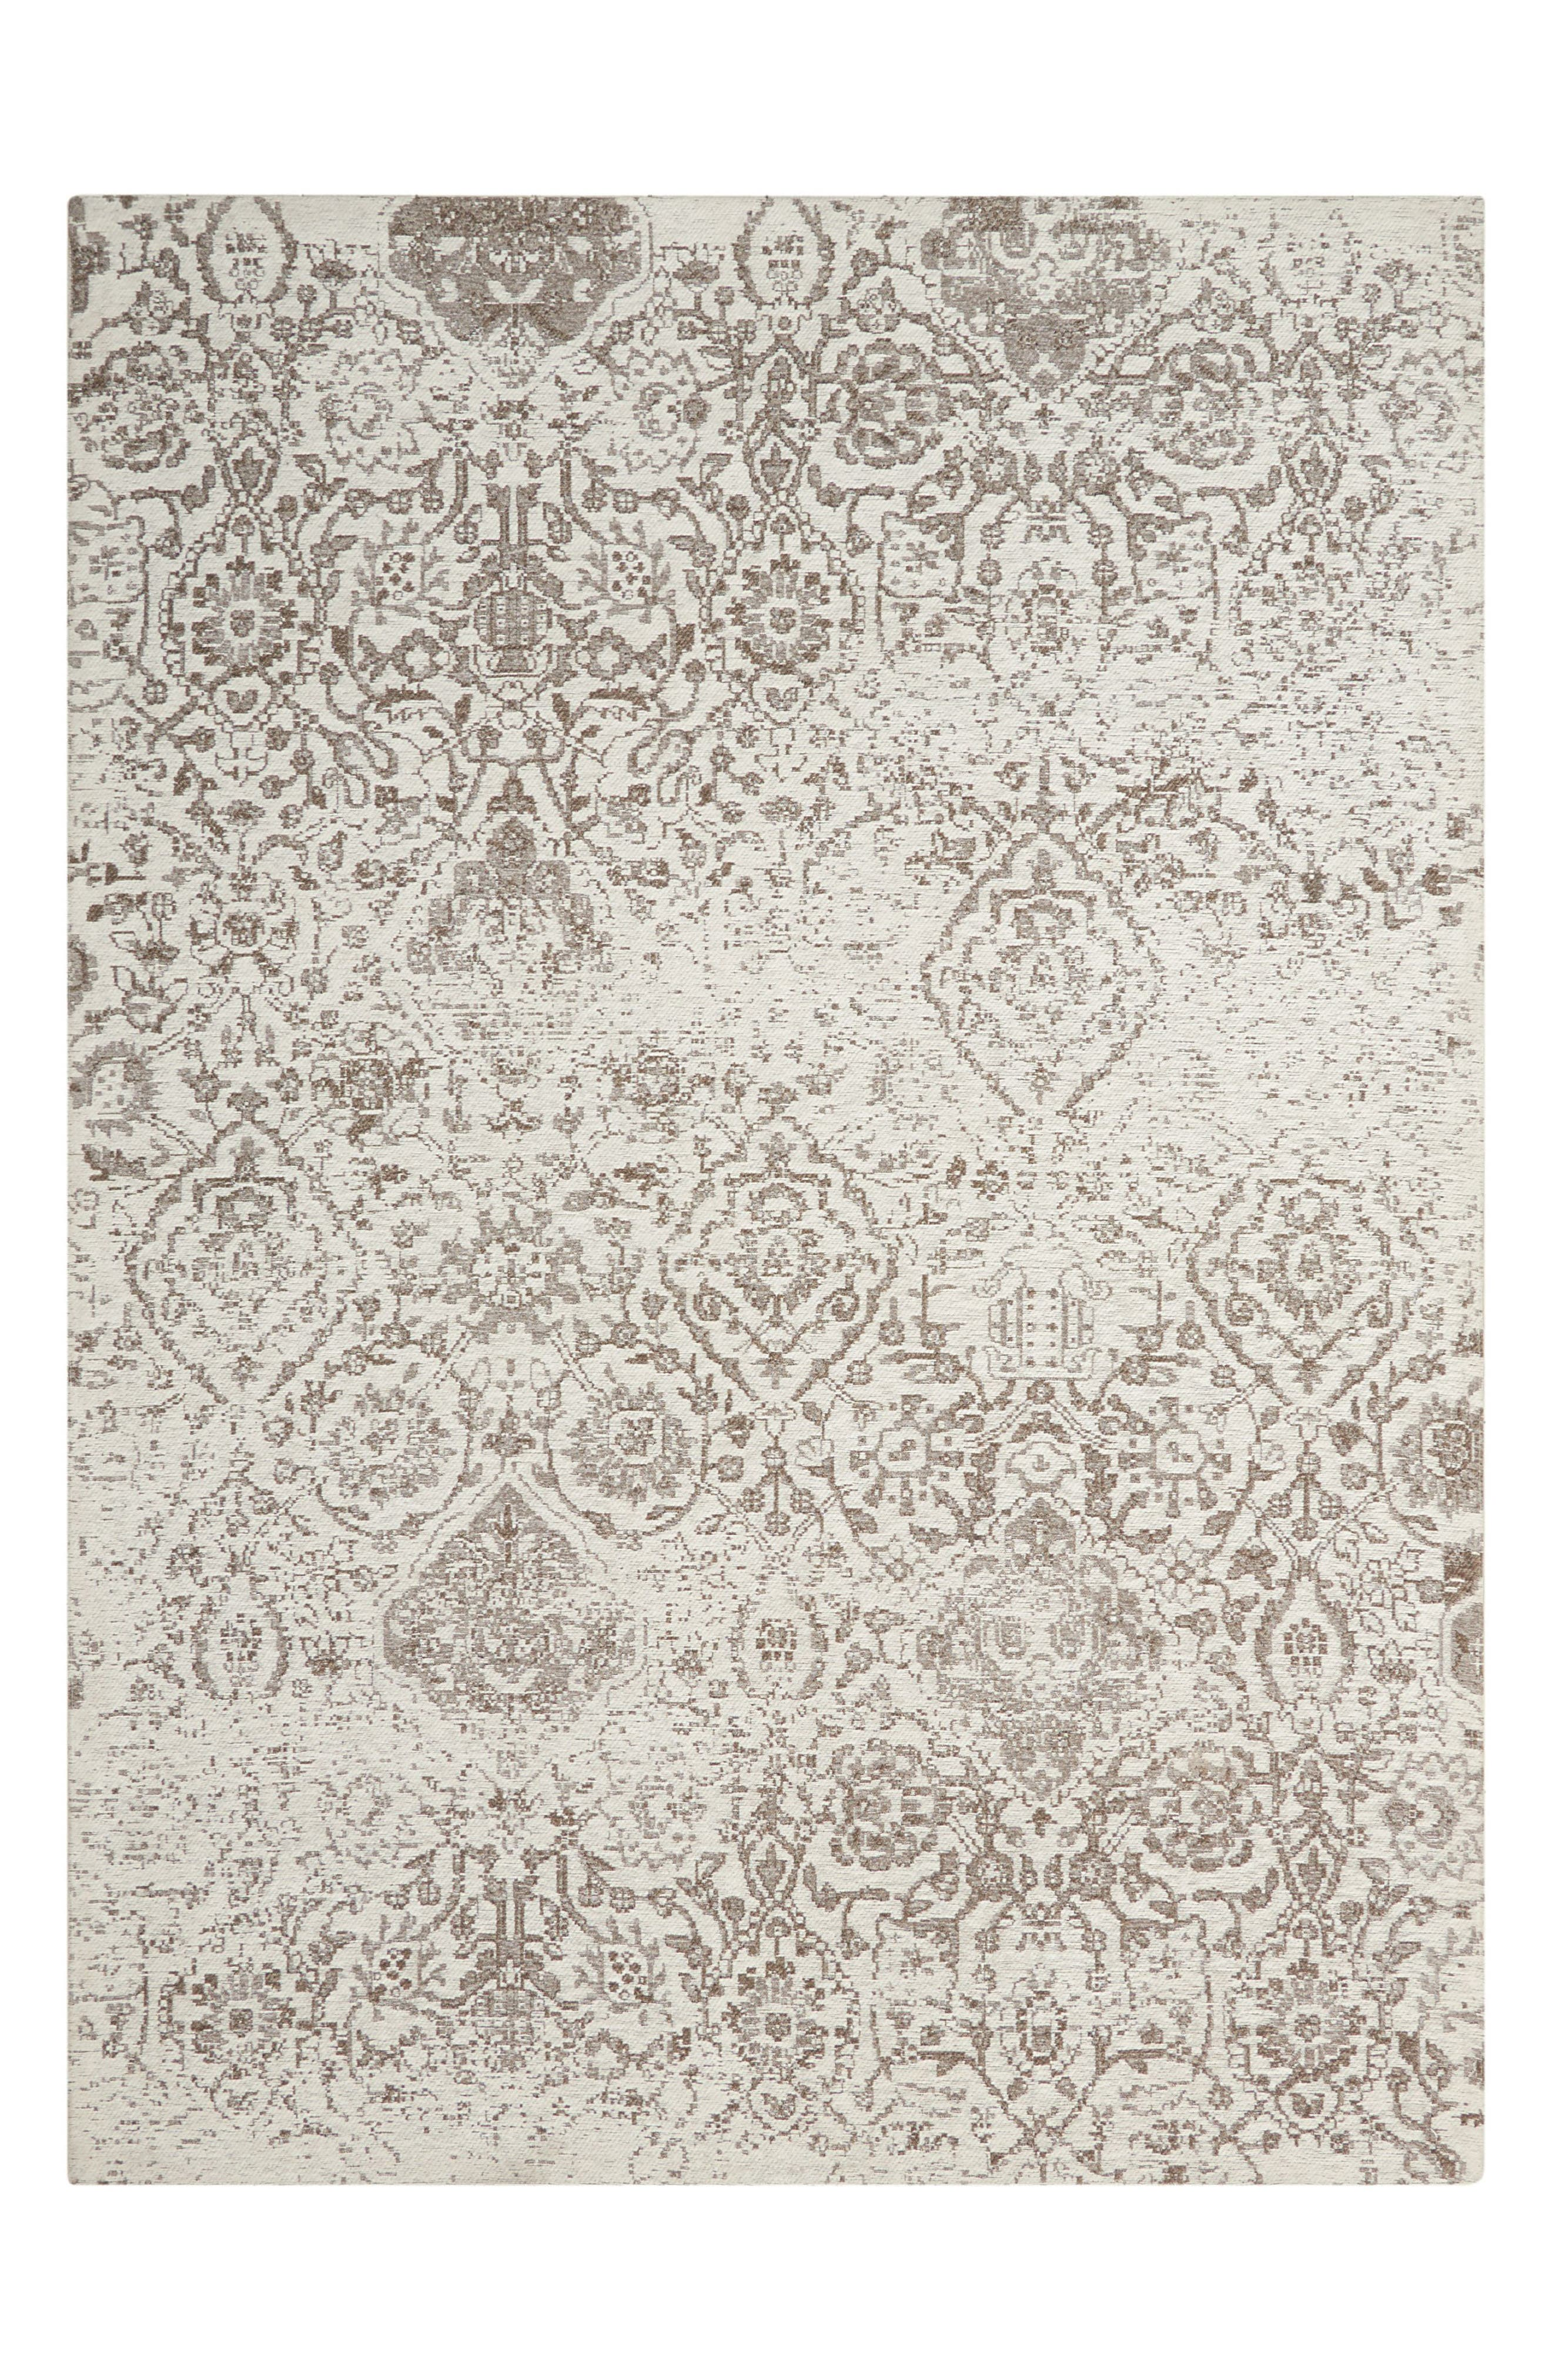 Damask Rug,                             Main thumbnail 1, color,                             020